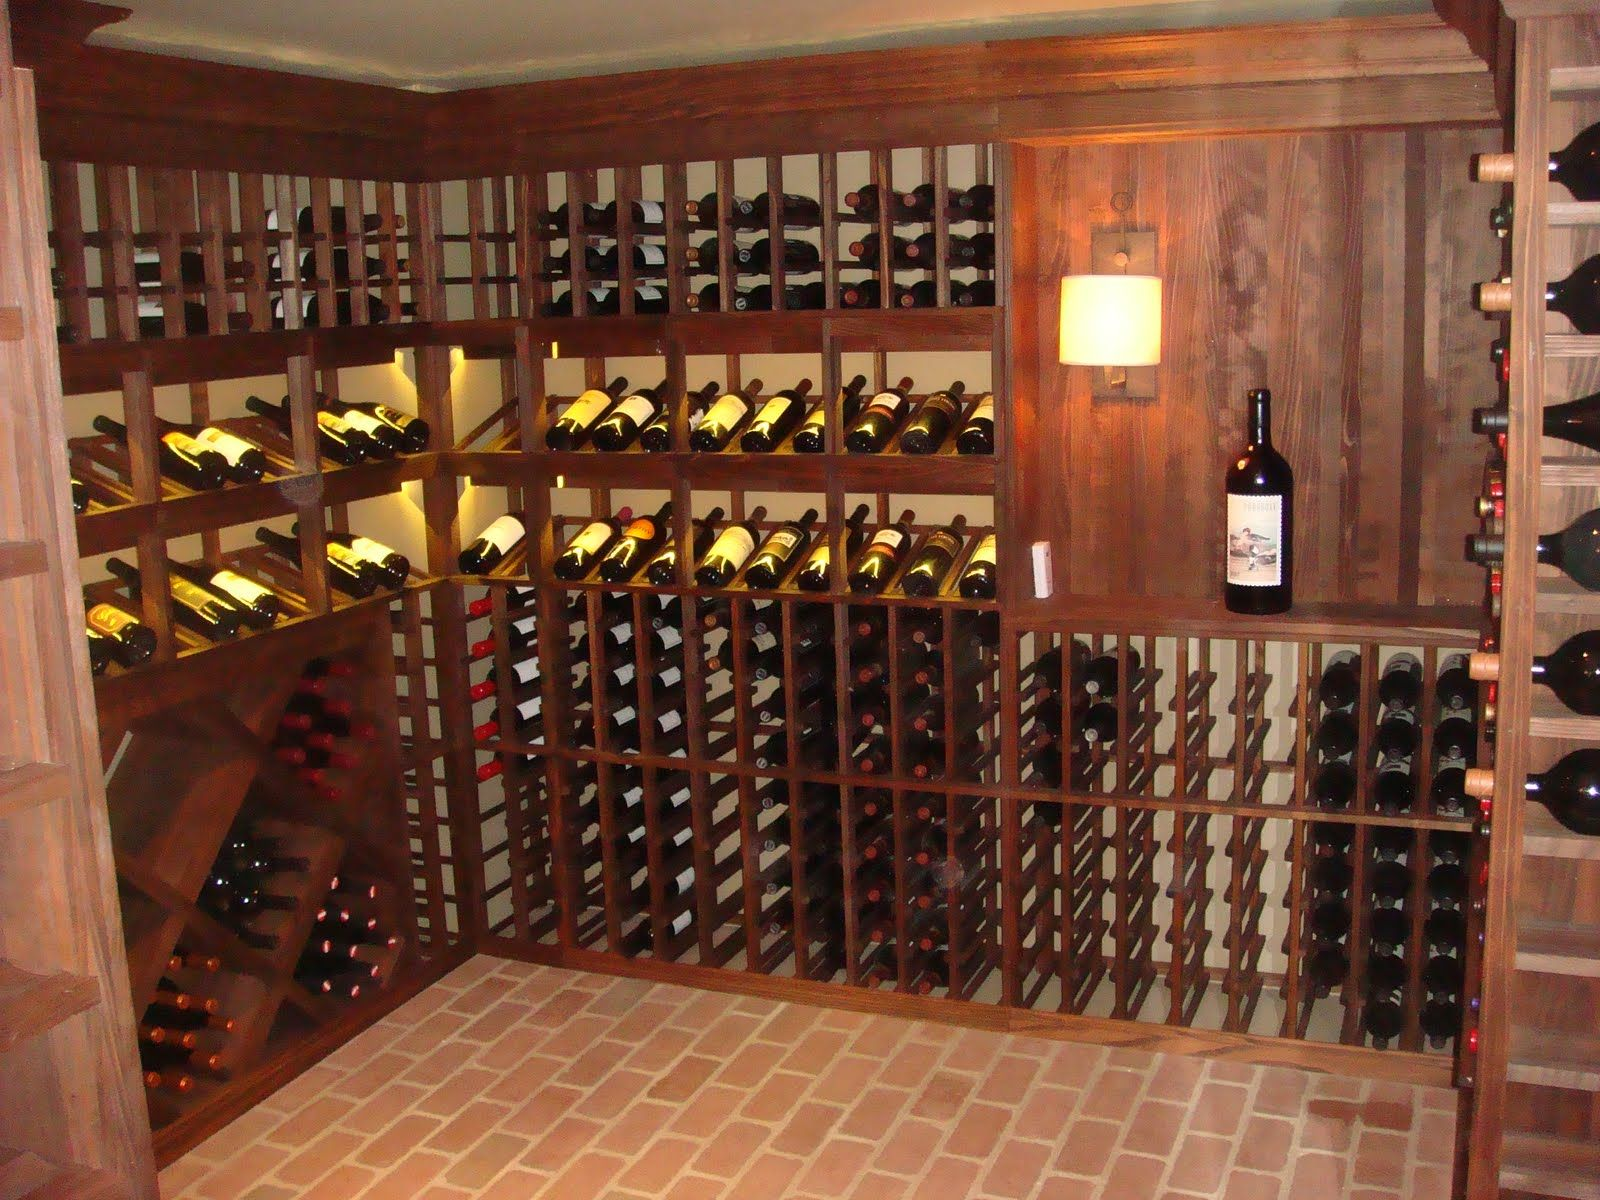 Wine Cellar Decorating Ideas Winery Design  Adding A Wine Cellar To Your Home Is A Great Use